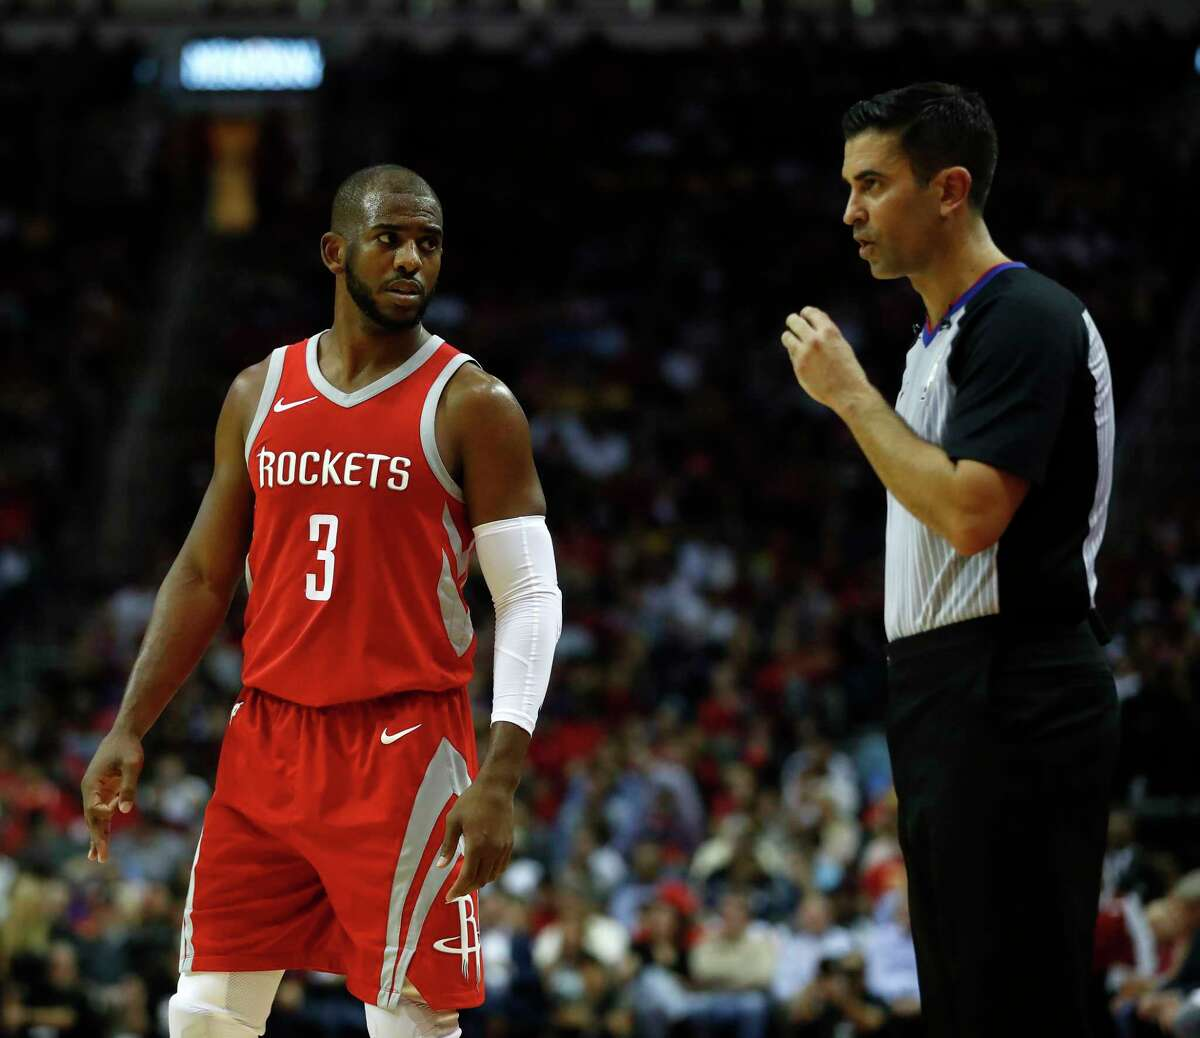 Houston Rockets guard Chris Paul (3) talks with referee Zach Zarba during the second half of an NBA basketball game at Toyota Center, Wednesday, Dec. 20, 2017, in Houston.